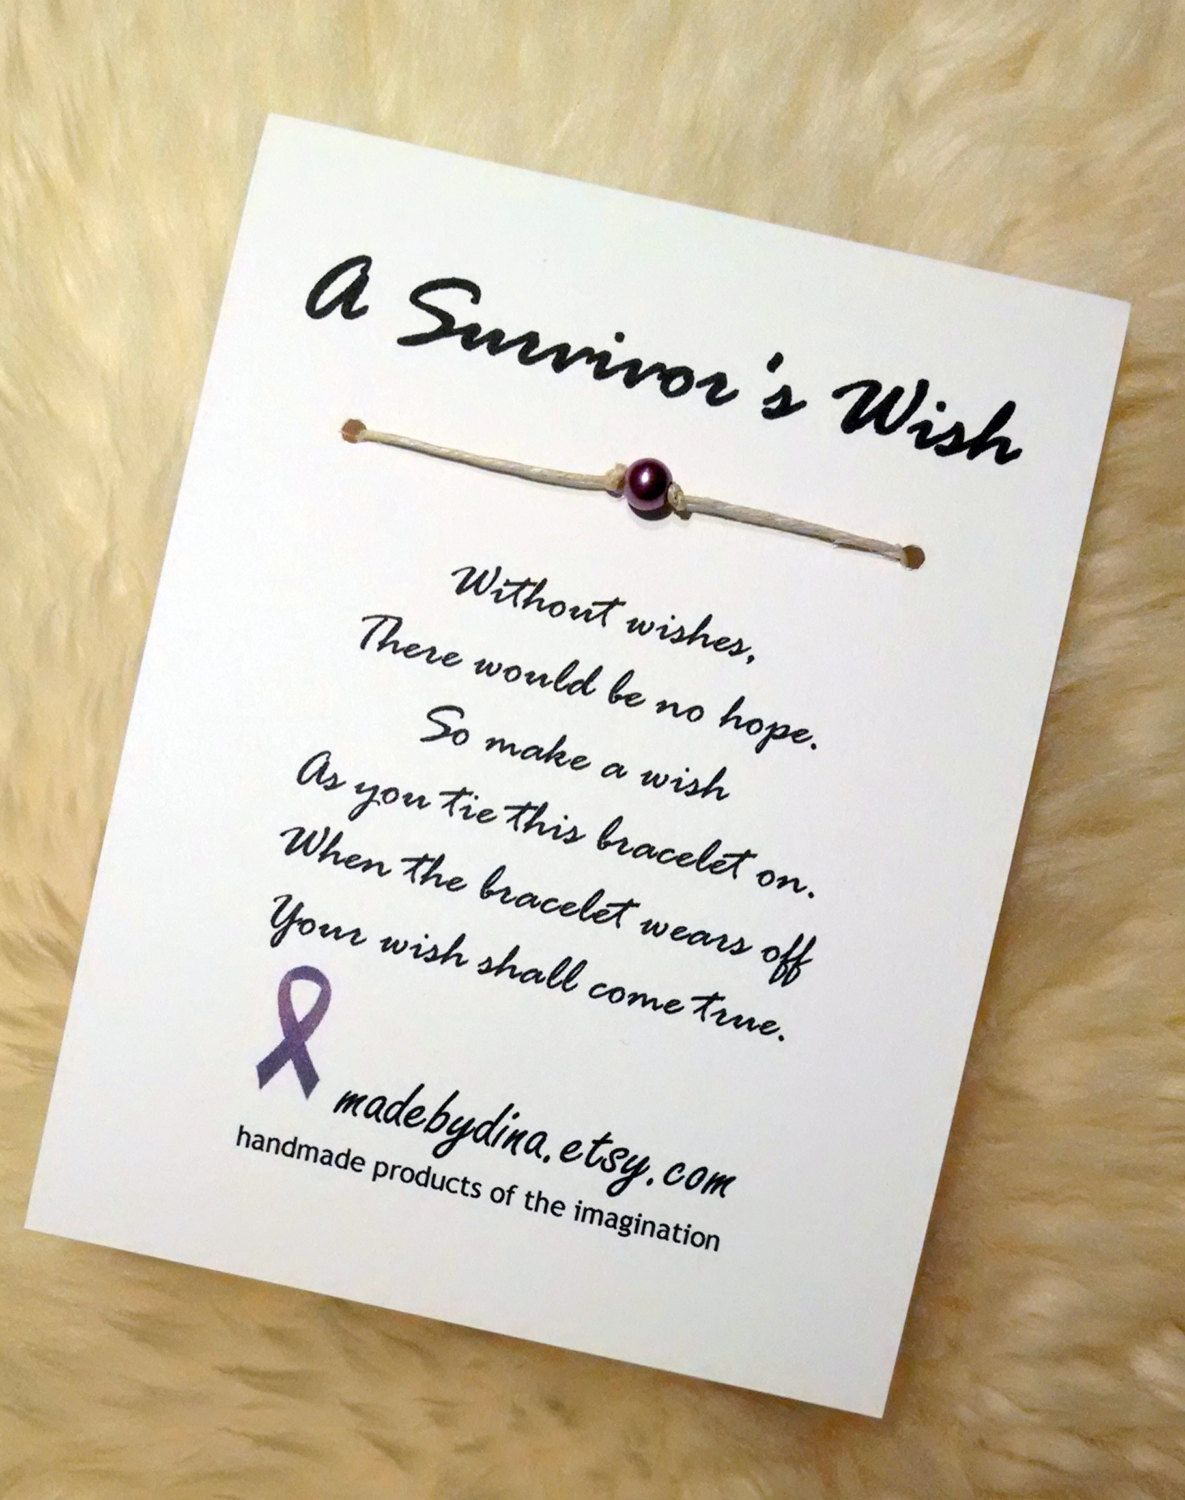 Pancreatic cancer took my sister a survivorus wish the wish